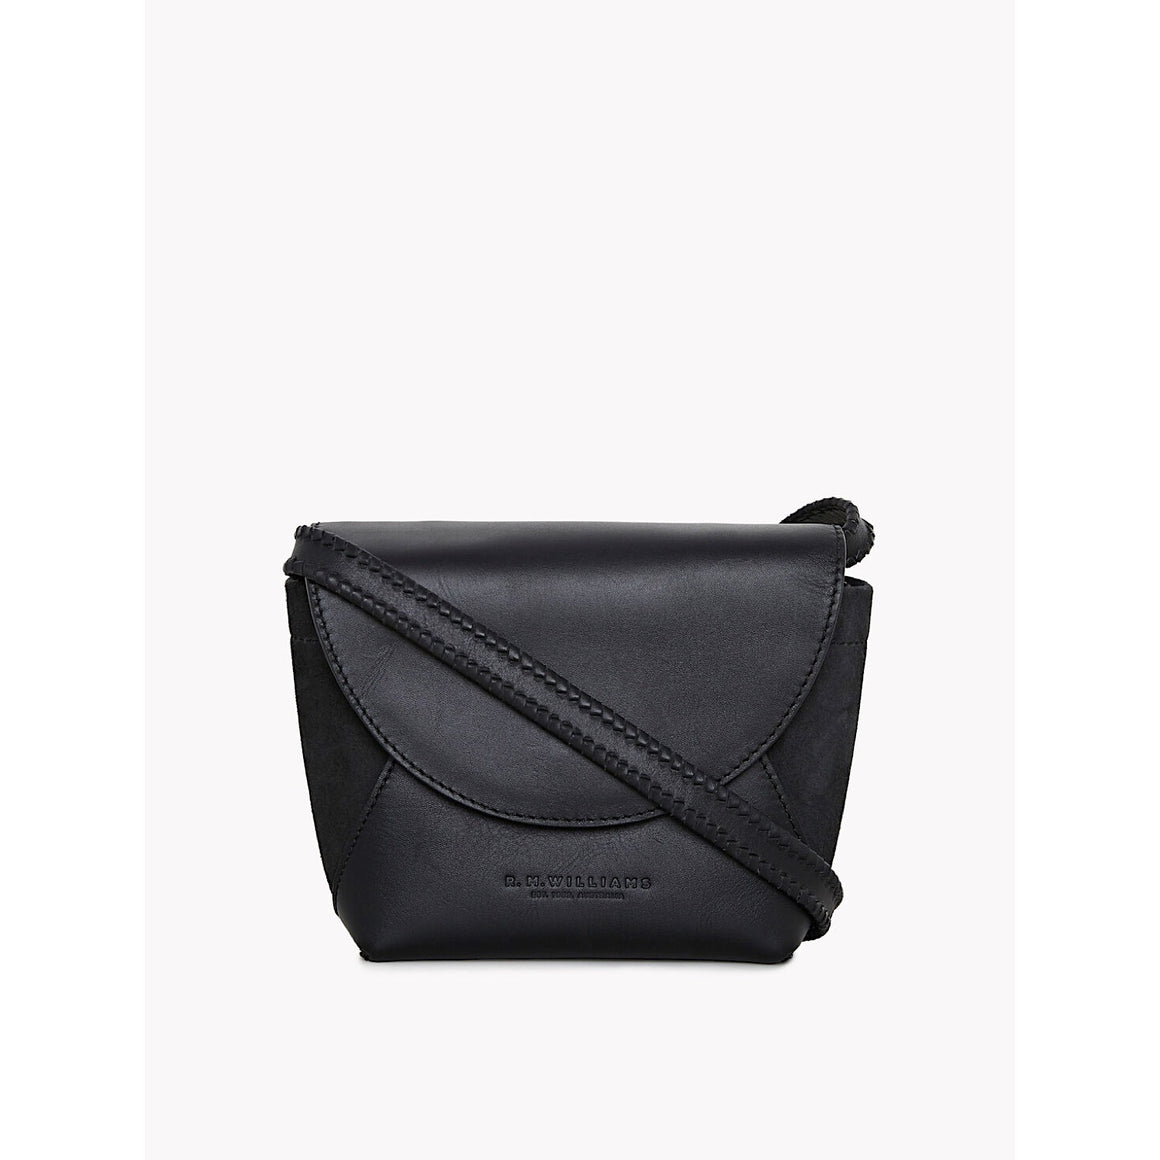 R.M Williams Womens Signature Clutch Bag Black